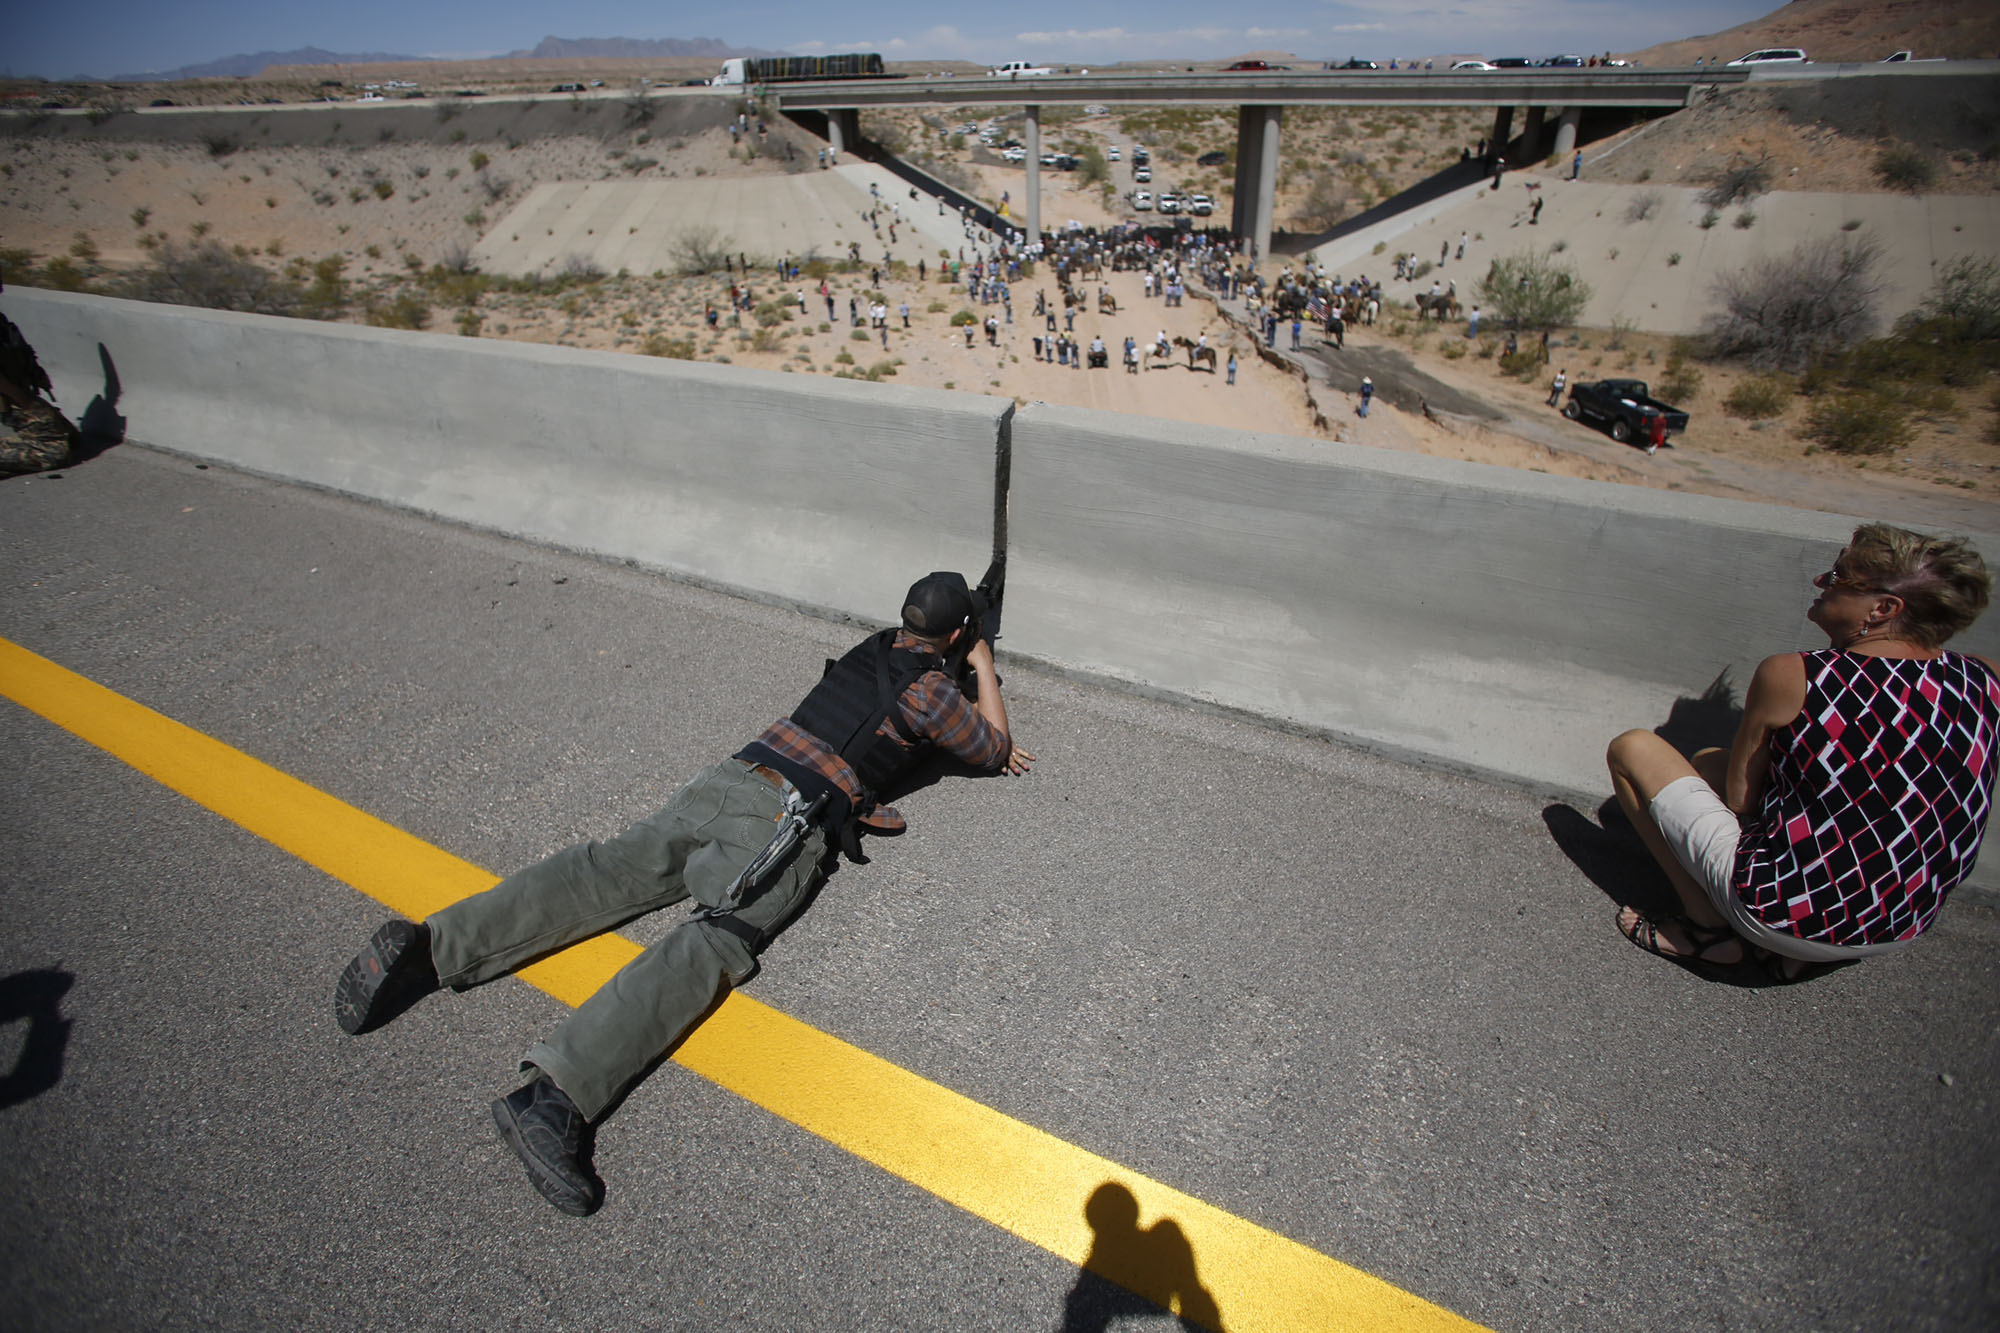 Eric Parker from central Idaho aims his weapon from a bridge as protesters gather by the Bureau of Land Management's base camp, where cattle that were seized from rancher Cliven Bundy are being held, near Bunkerville, Nevada April 12, 2014. The U.S. Bureau of Land Management on Saturday said it had called off an effort to round up Bundy's herd of cattle that it had said were being illegally grazed in southern Nevada, citing concerns about safety. The conflict between Bundy and U.S. land managers had brought a team of armed federal rangers to Nevada to seize the 1,000 head of cattle. REUTERS/Jim Urquhart (UNITED STATES - Tags: ANIMALS CIVIL UNREST AGRICULTURE CRIME LAW) - RTR3L0EB